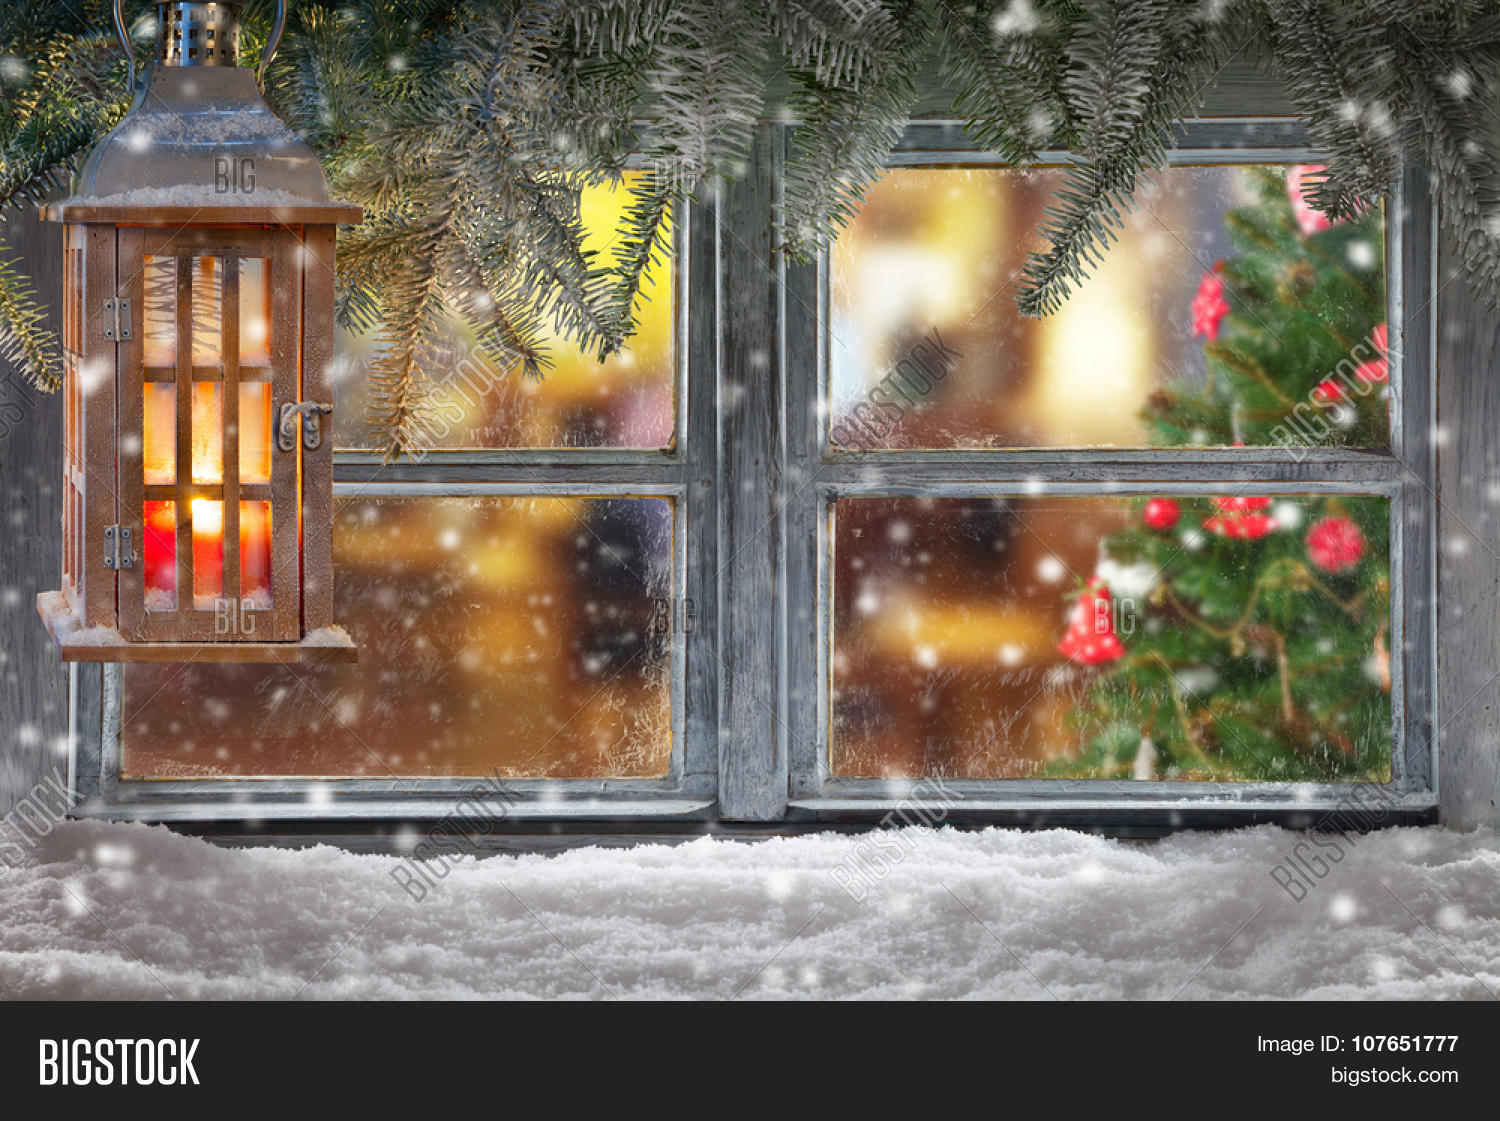 Atmospheric christmas window sill image photo bigstock for Photo decoration